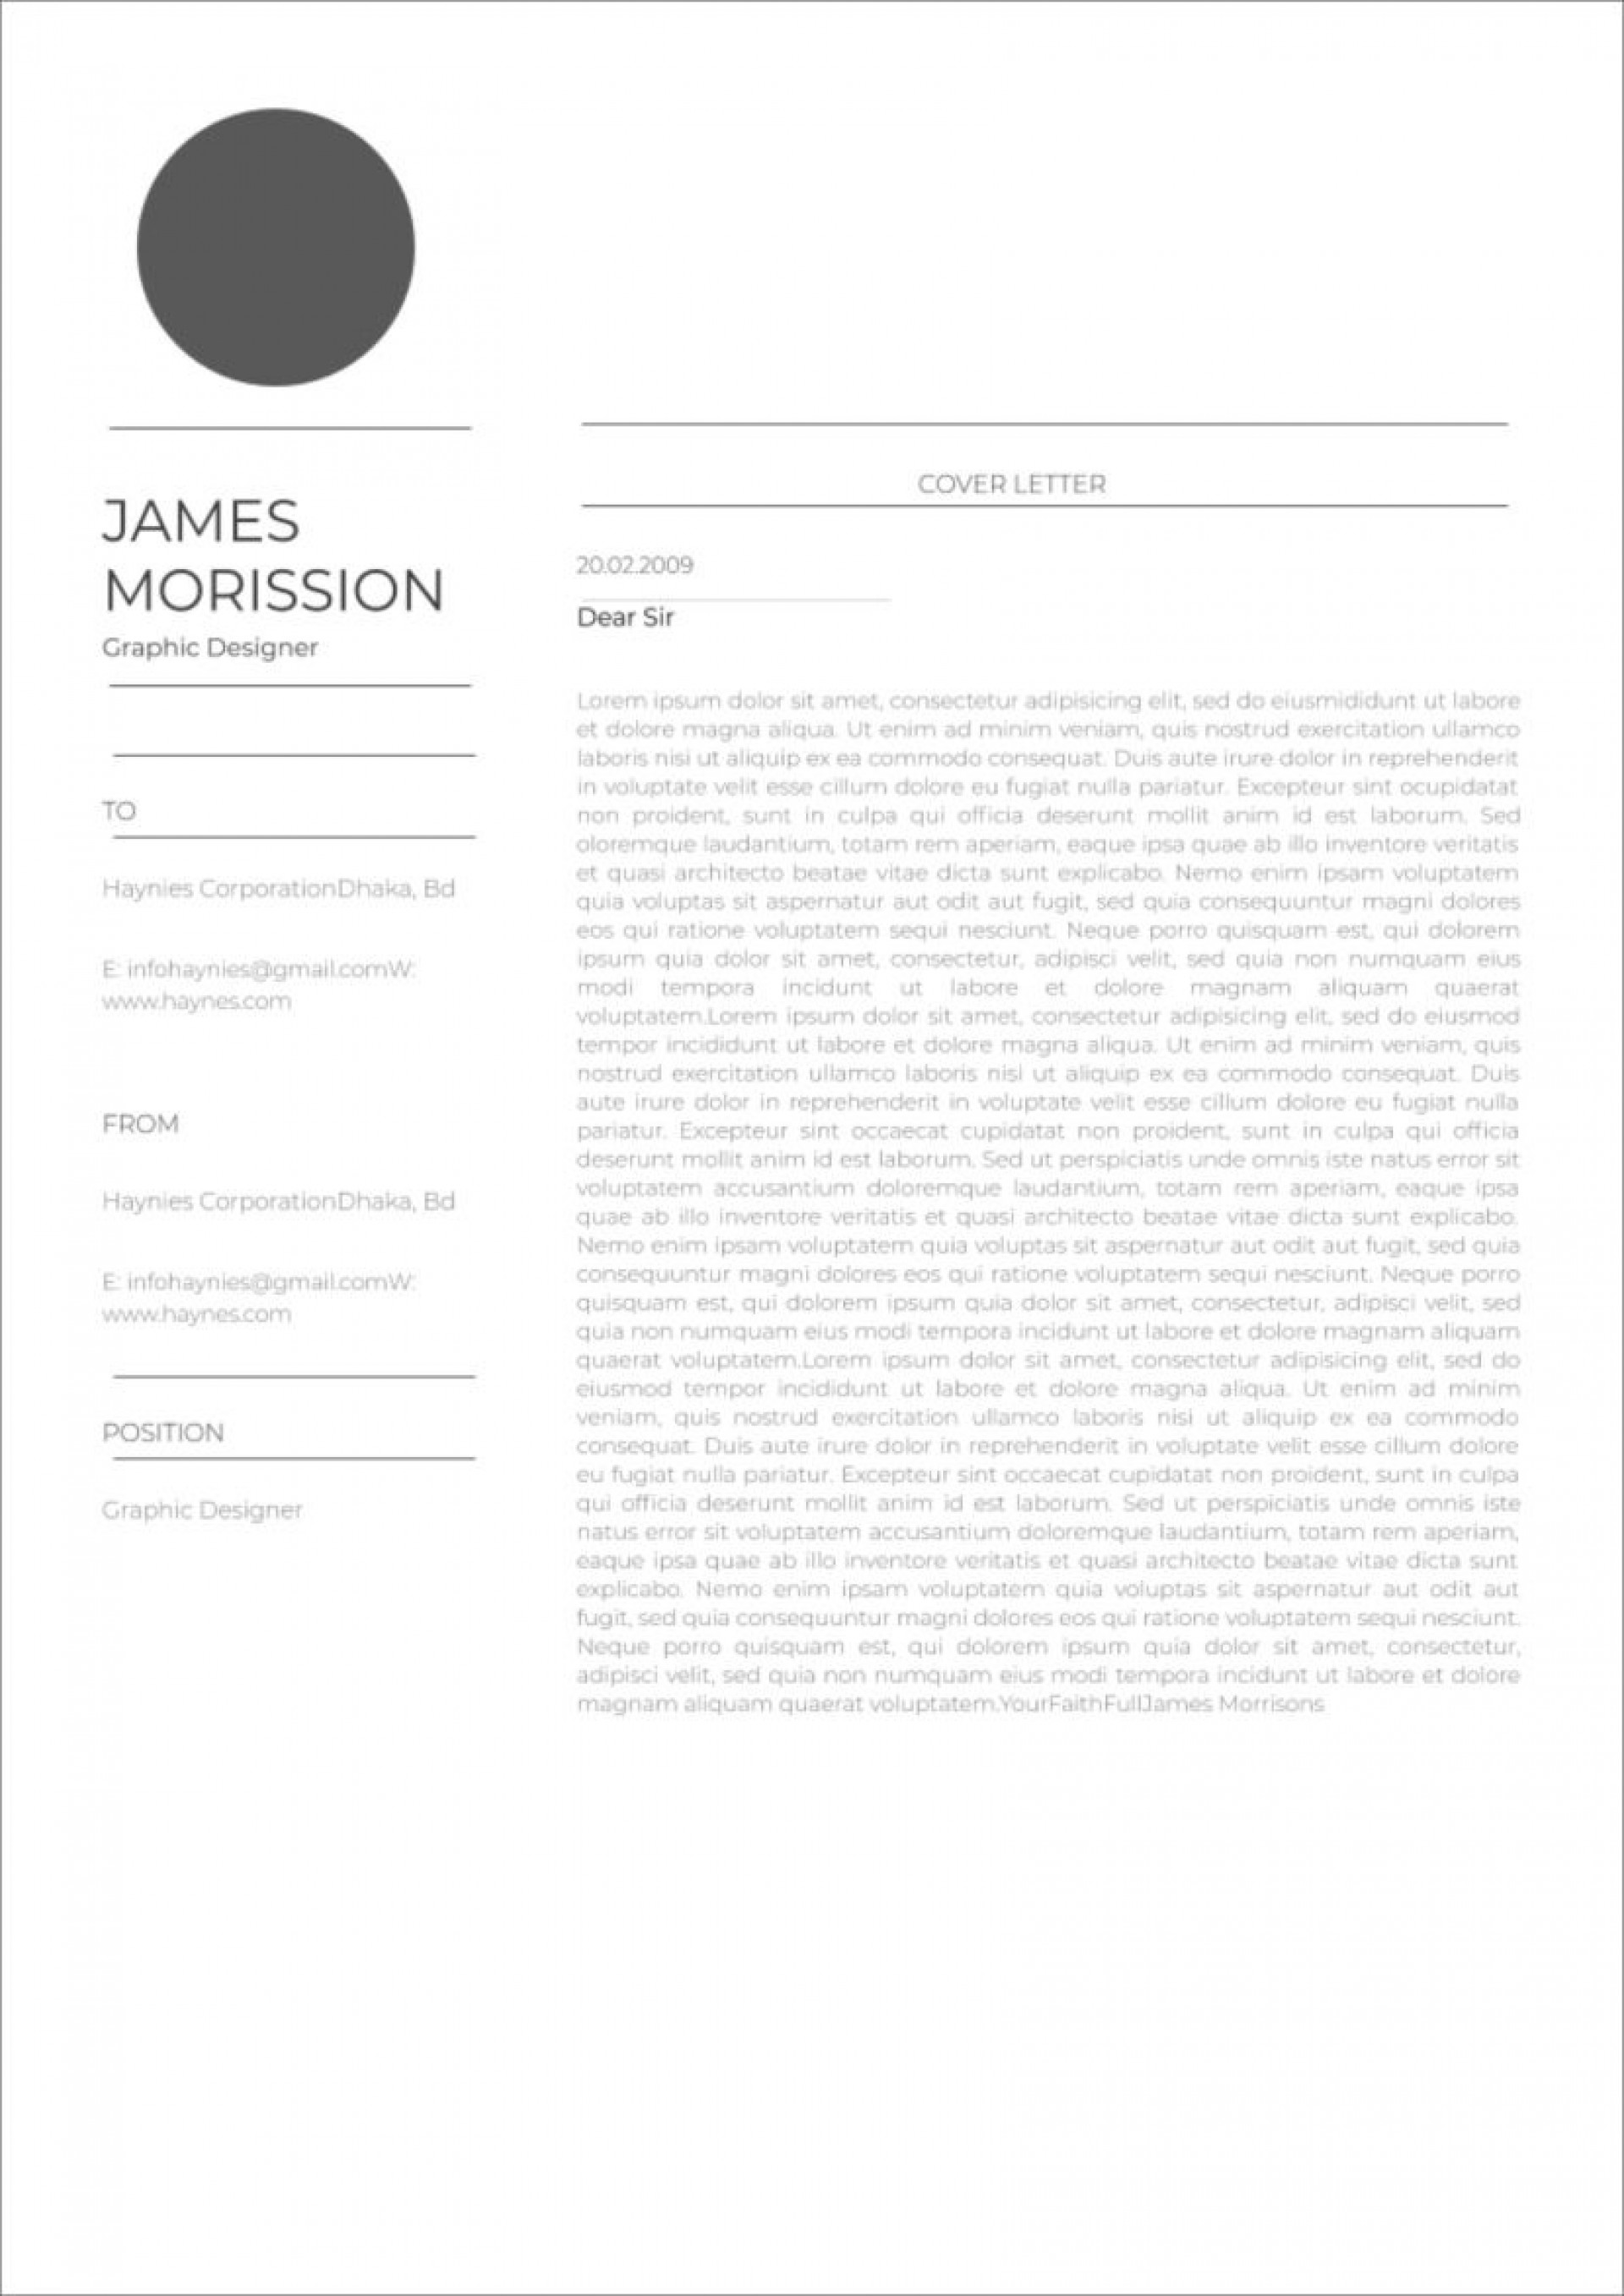 007 Beautiful Google Doc Cover Letter Template Photo  Swis Free Reddit1920